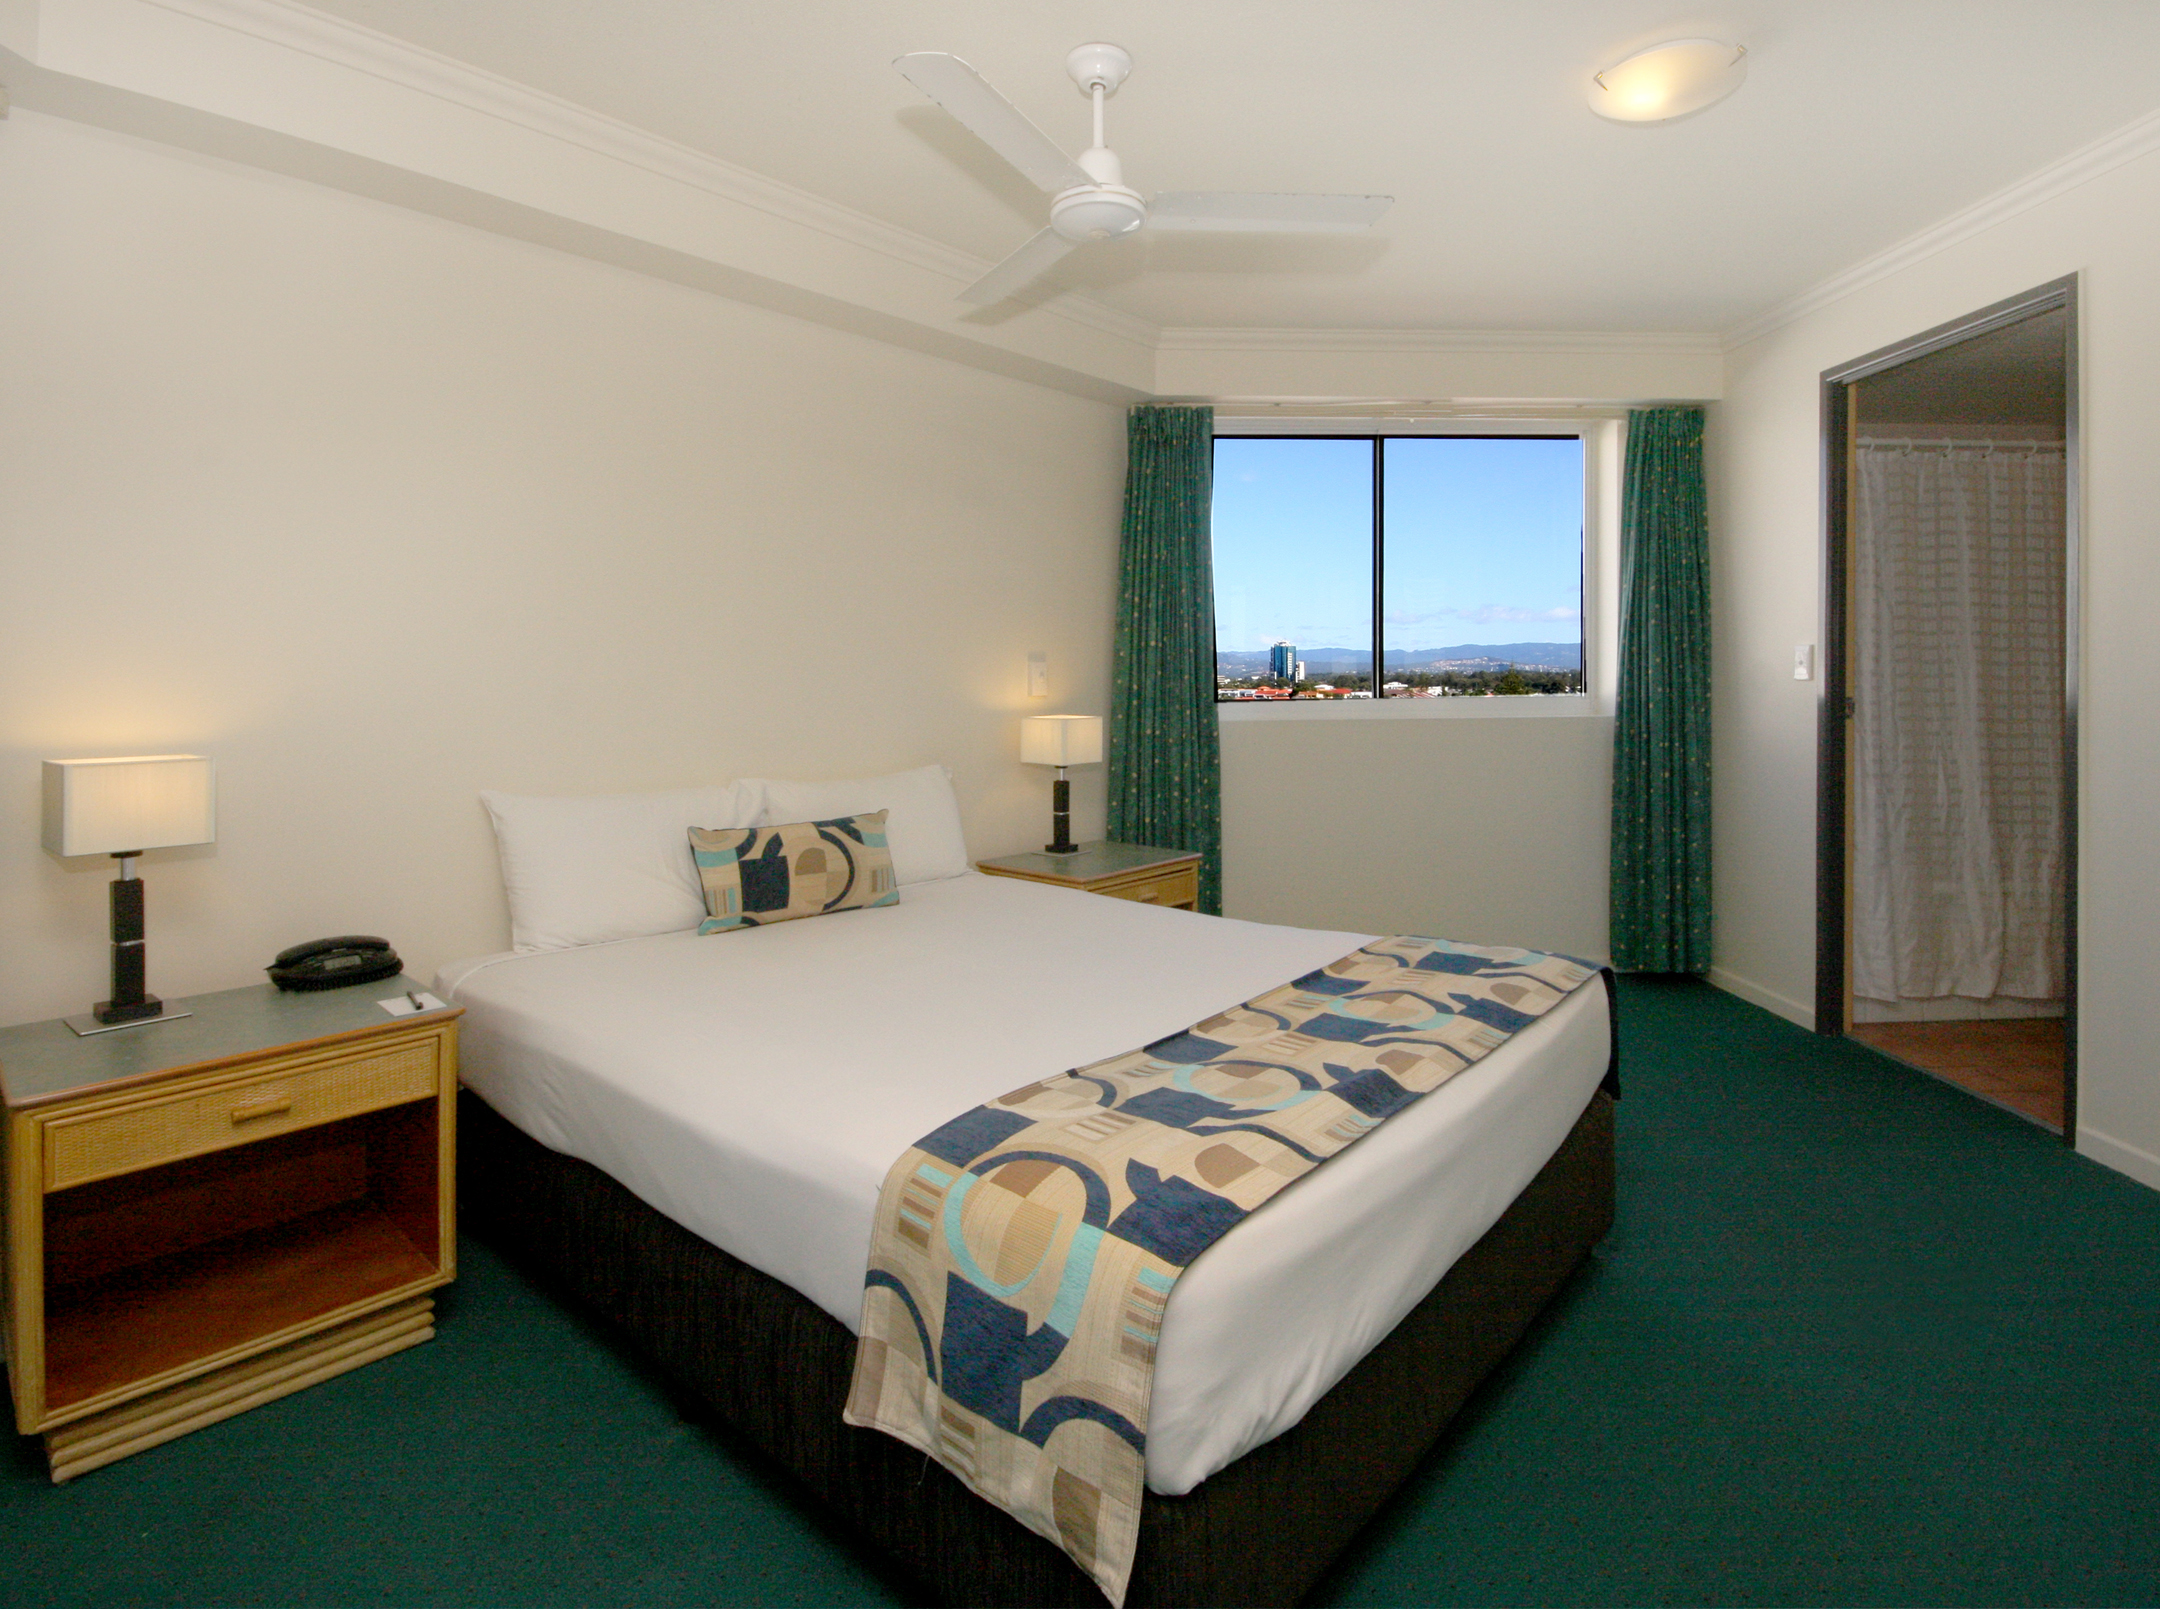 Teen-friendly family accommodation on the Gold Coast ...